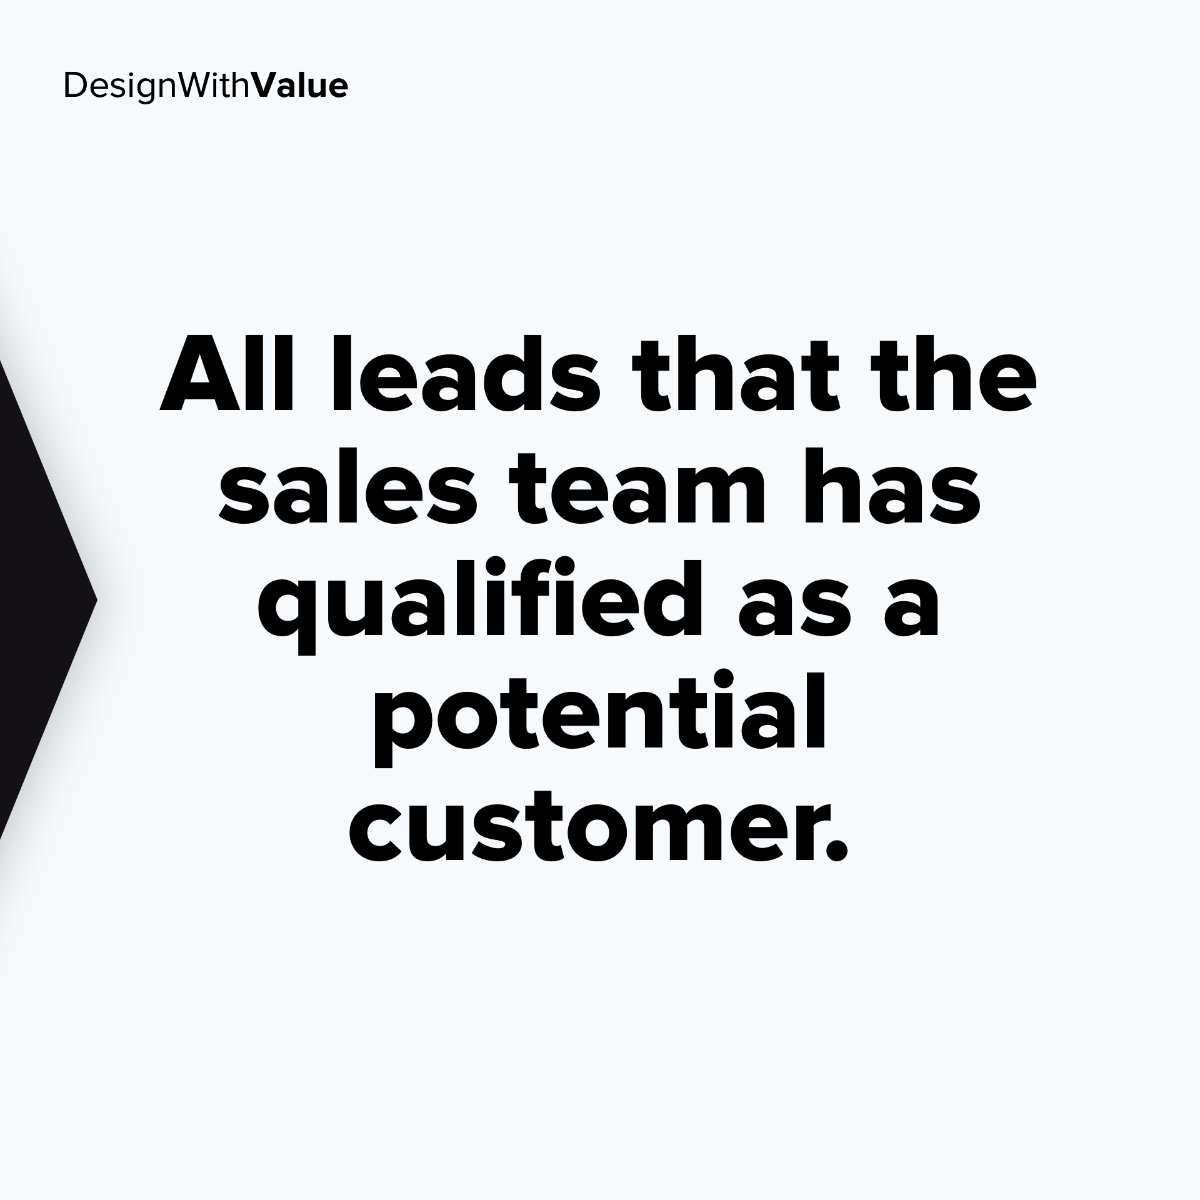 All leads that the sales team has qualified as a potential customer